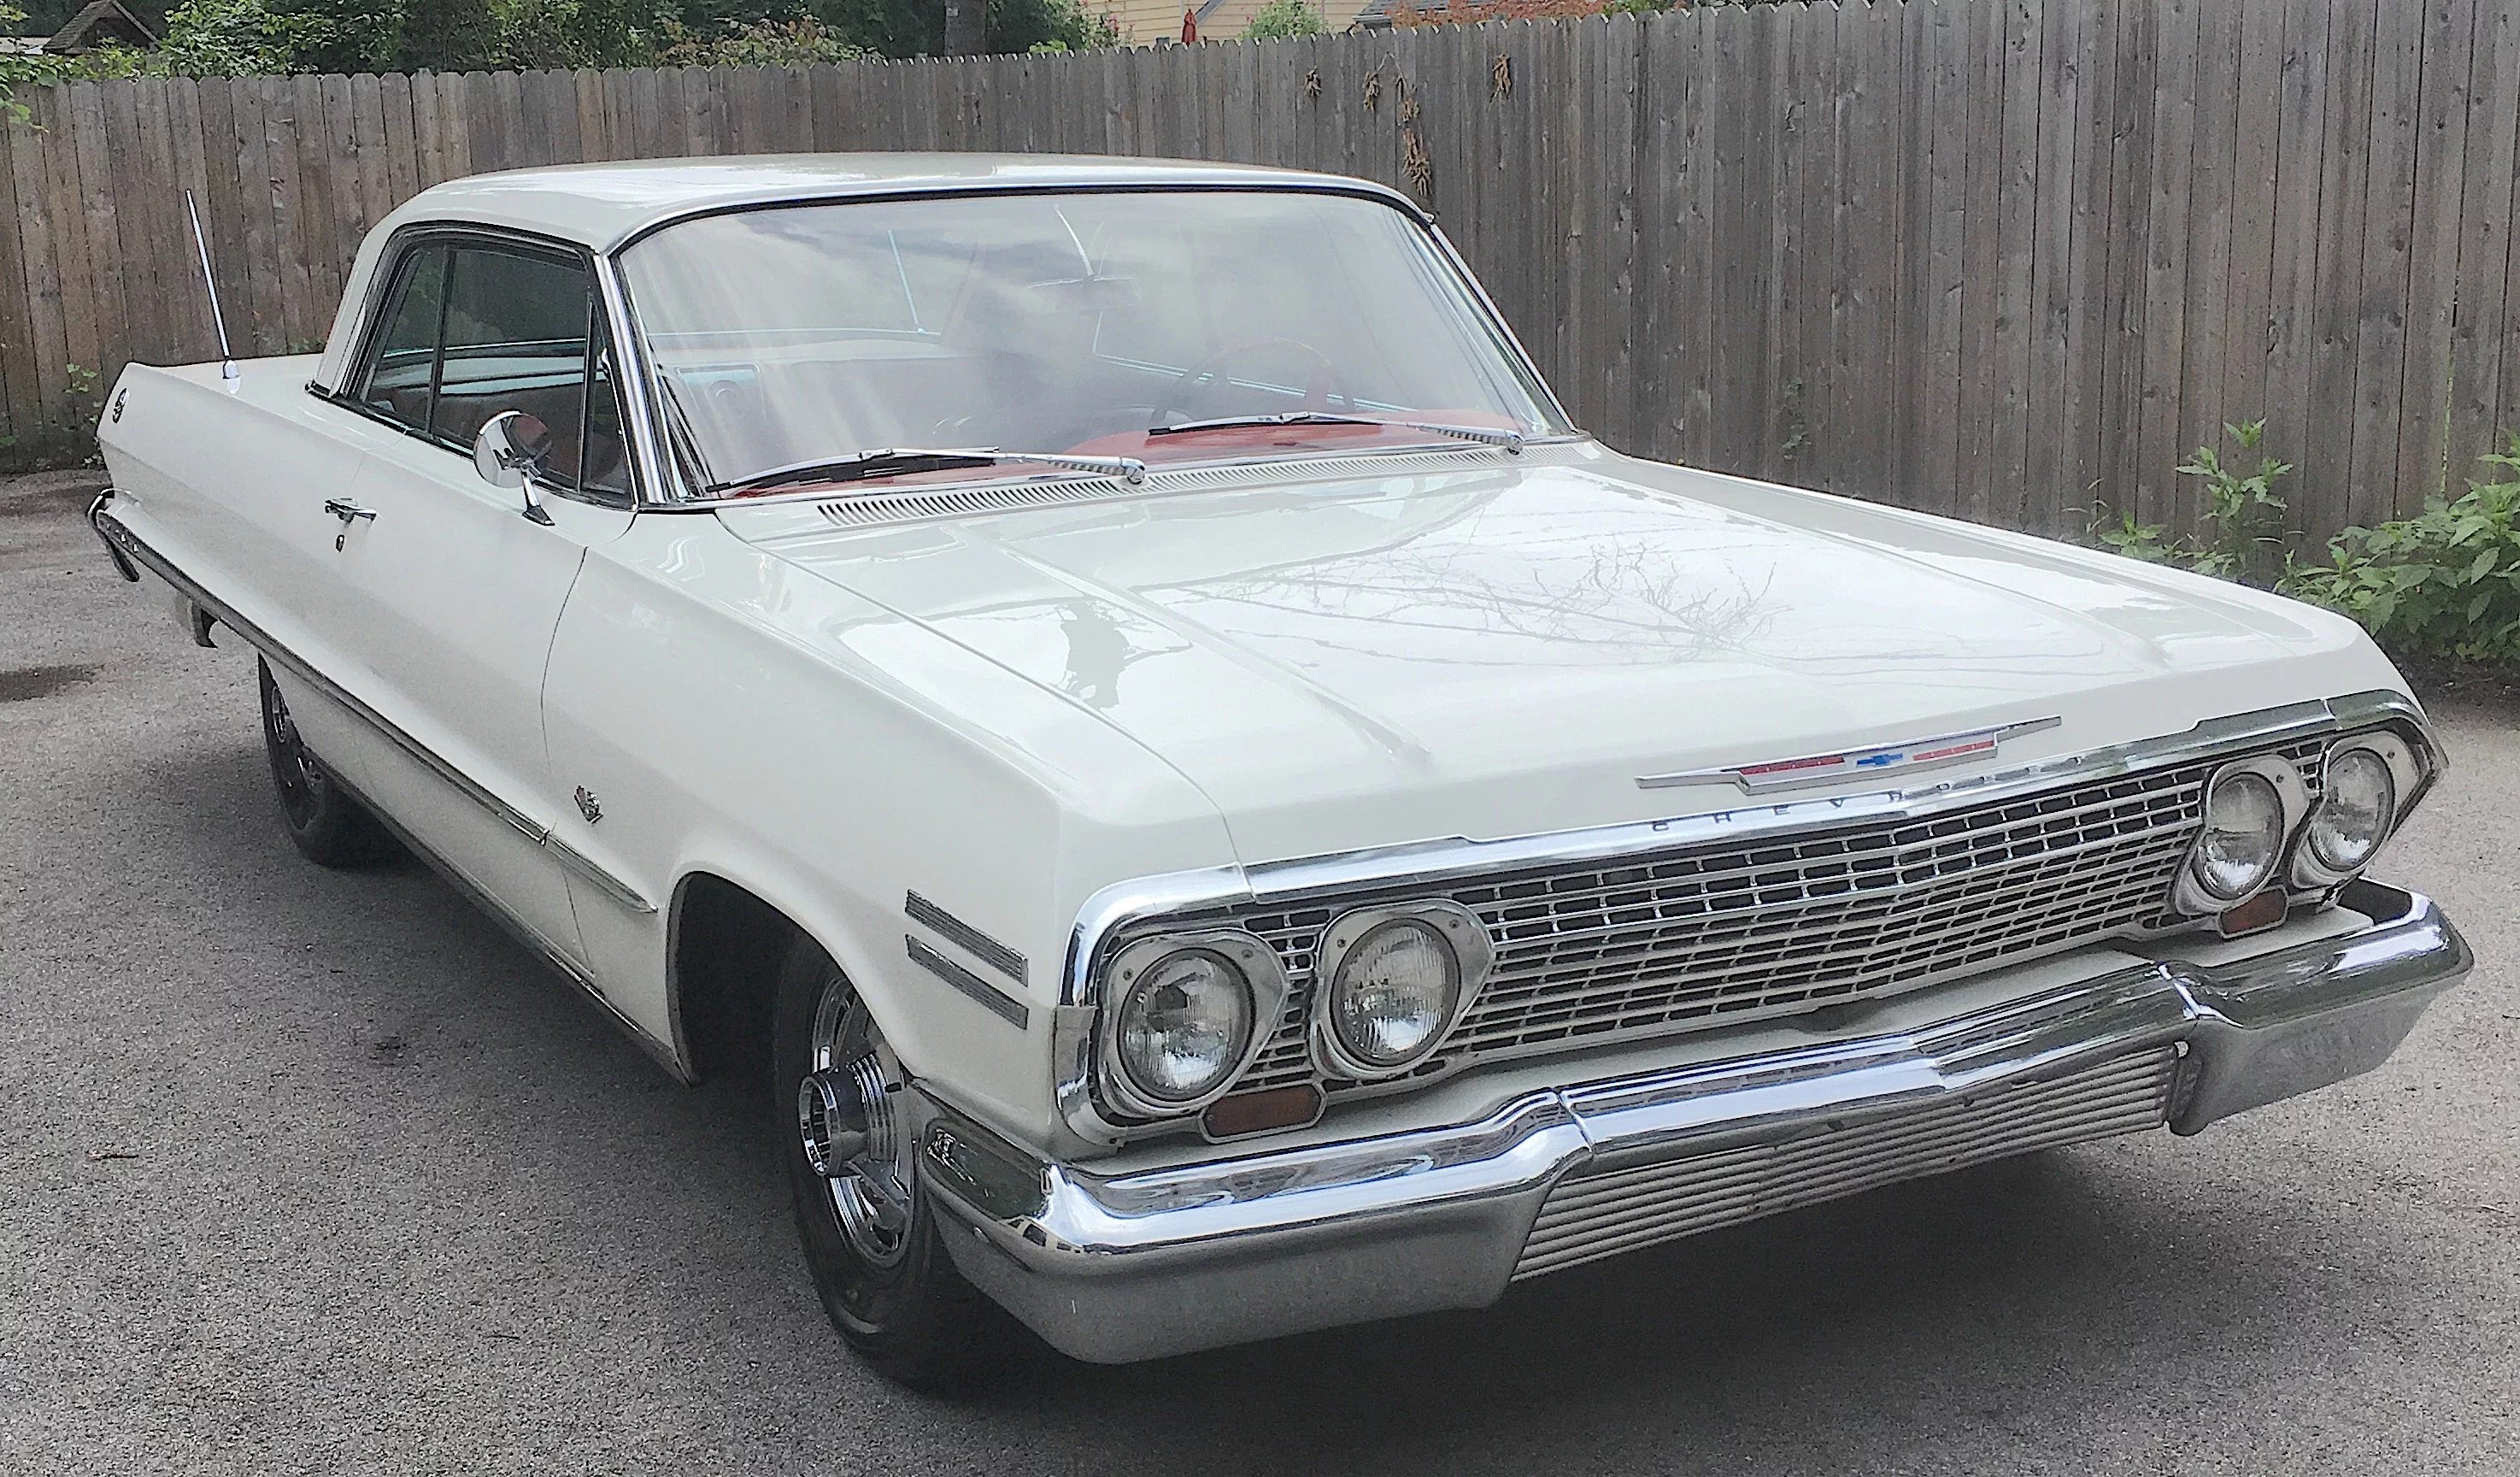 small resolution of 1962 chevrolet impala classics for sale classics on autotrader 1966 impala wiring harness 1963 chevrolet impala